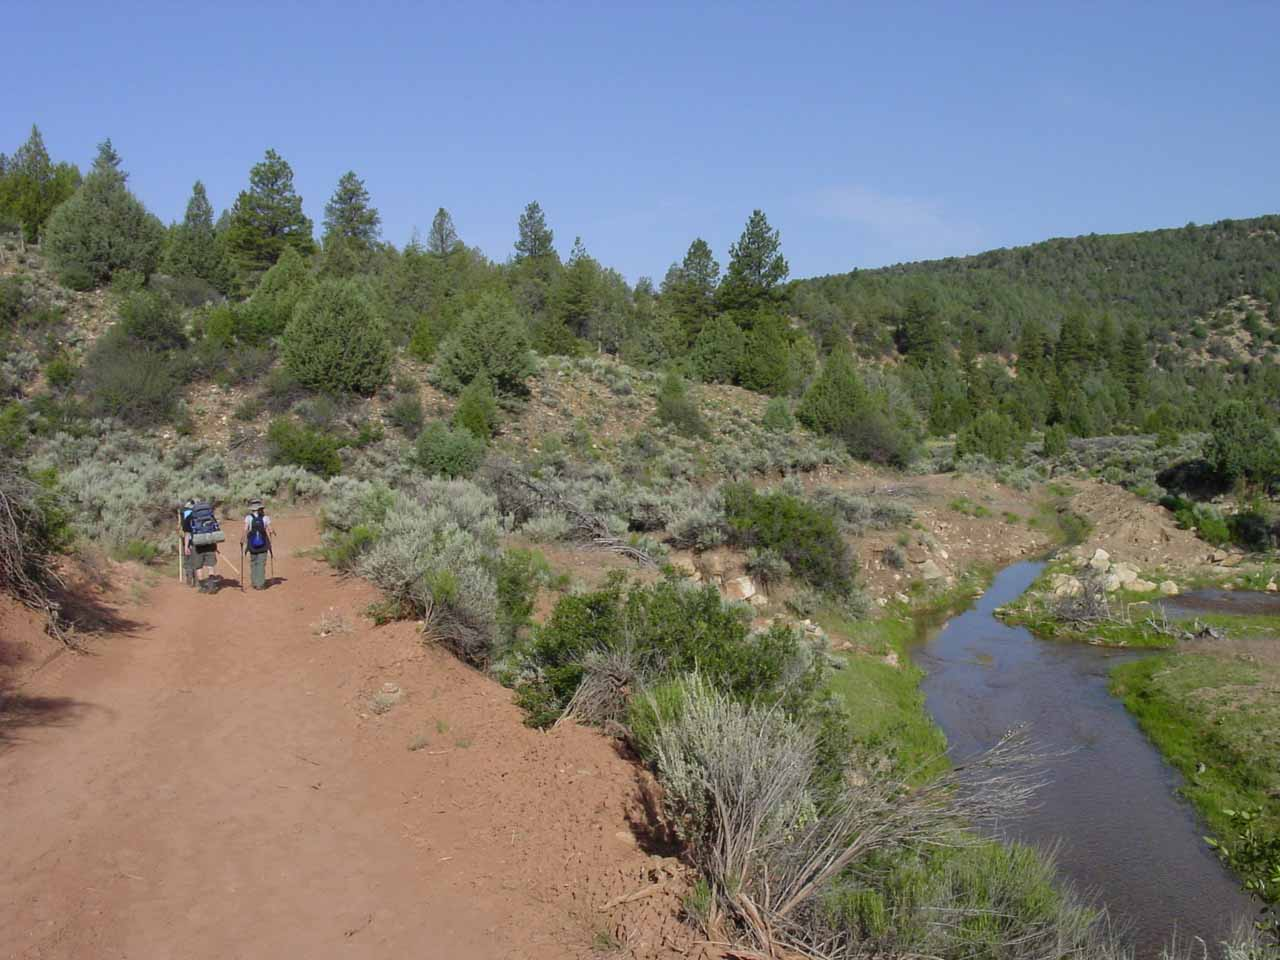 The group walking along the trail following the Virgin River